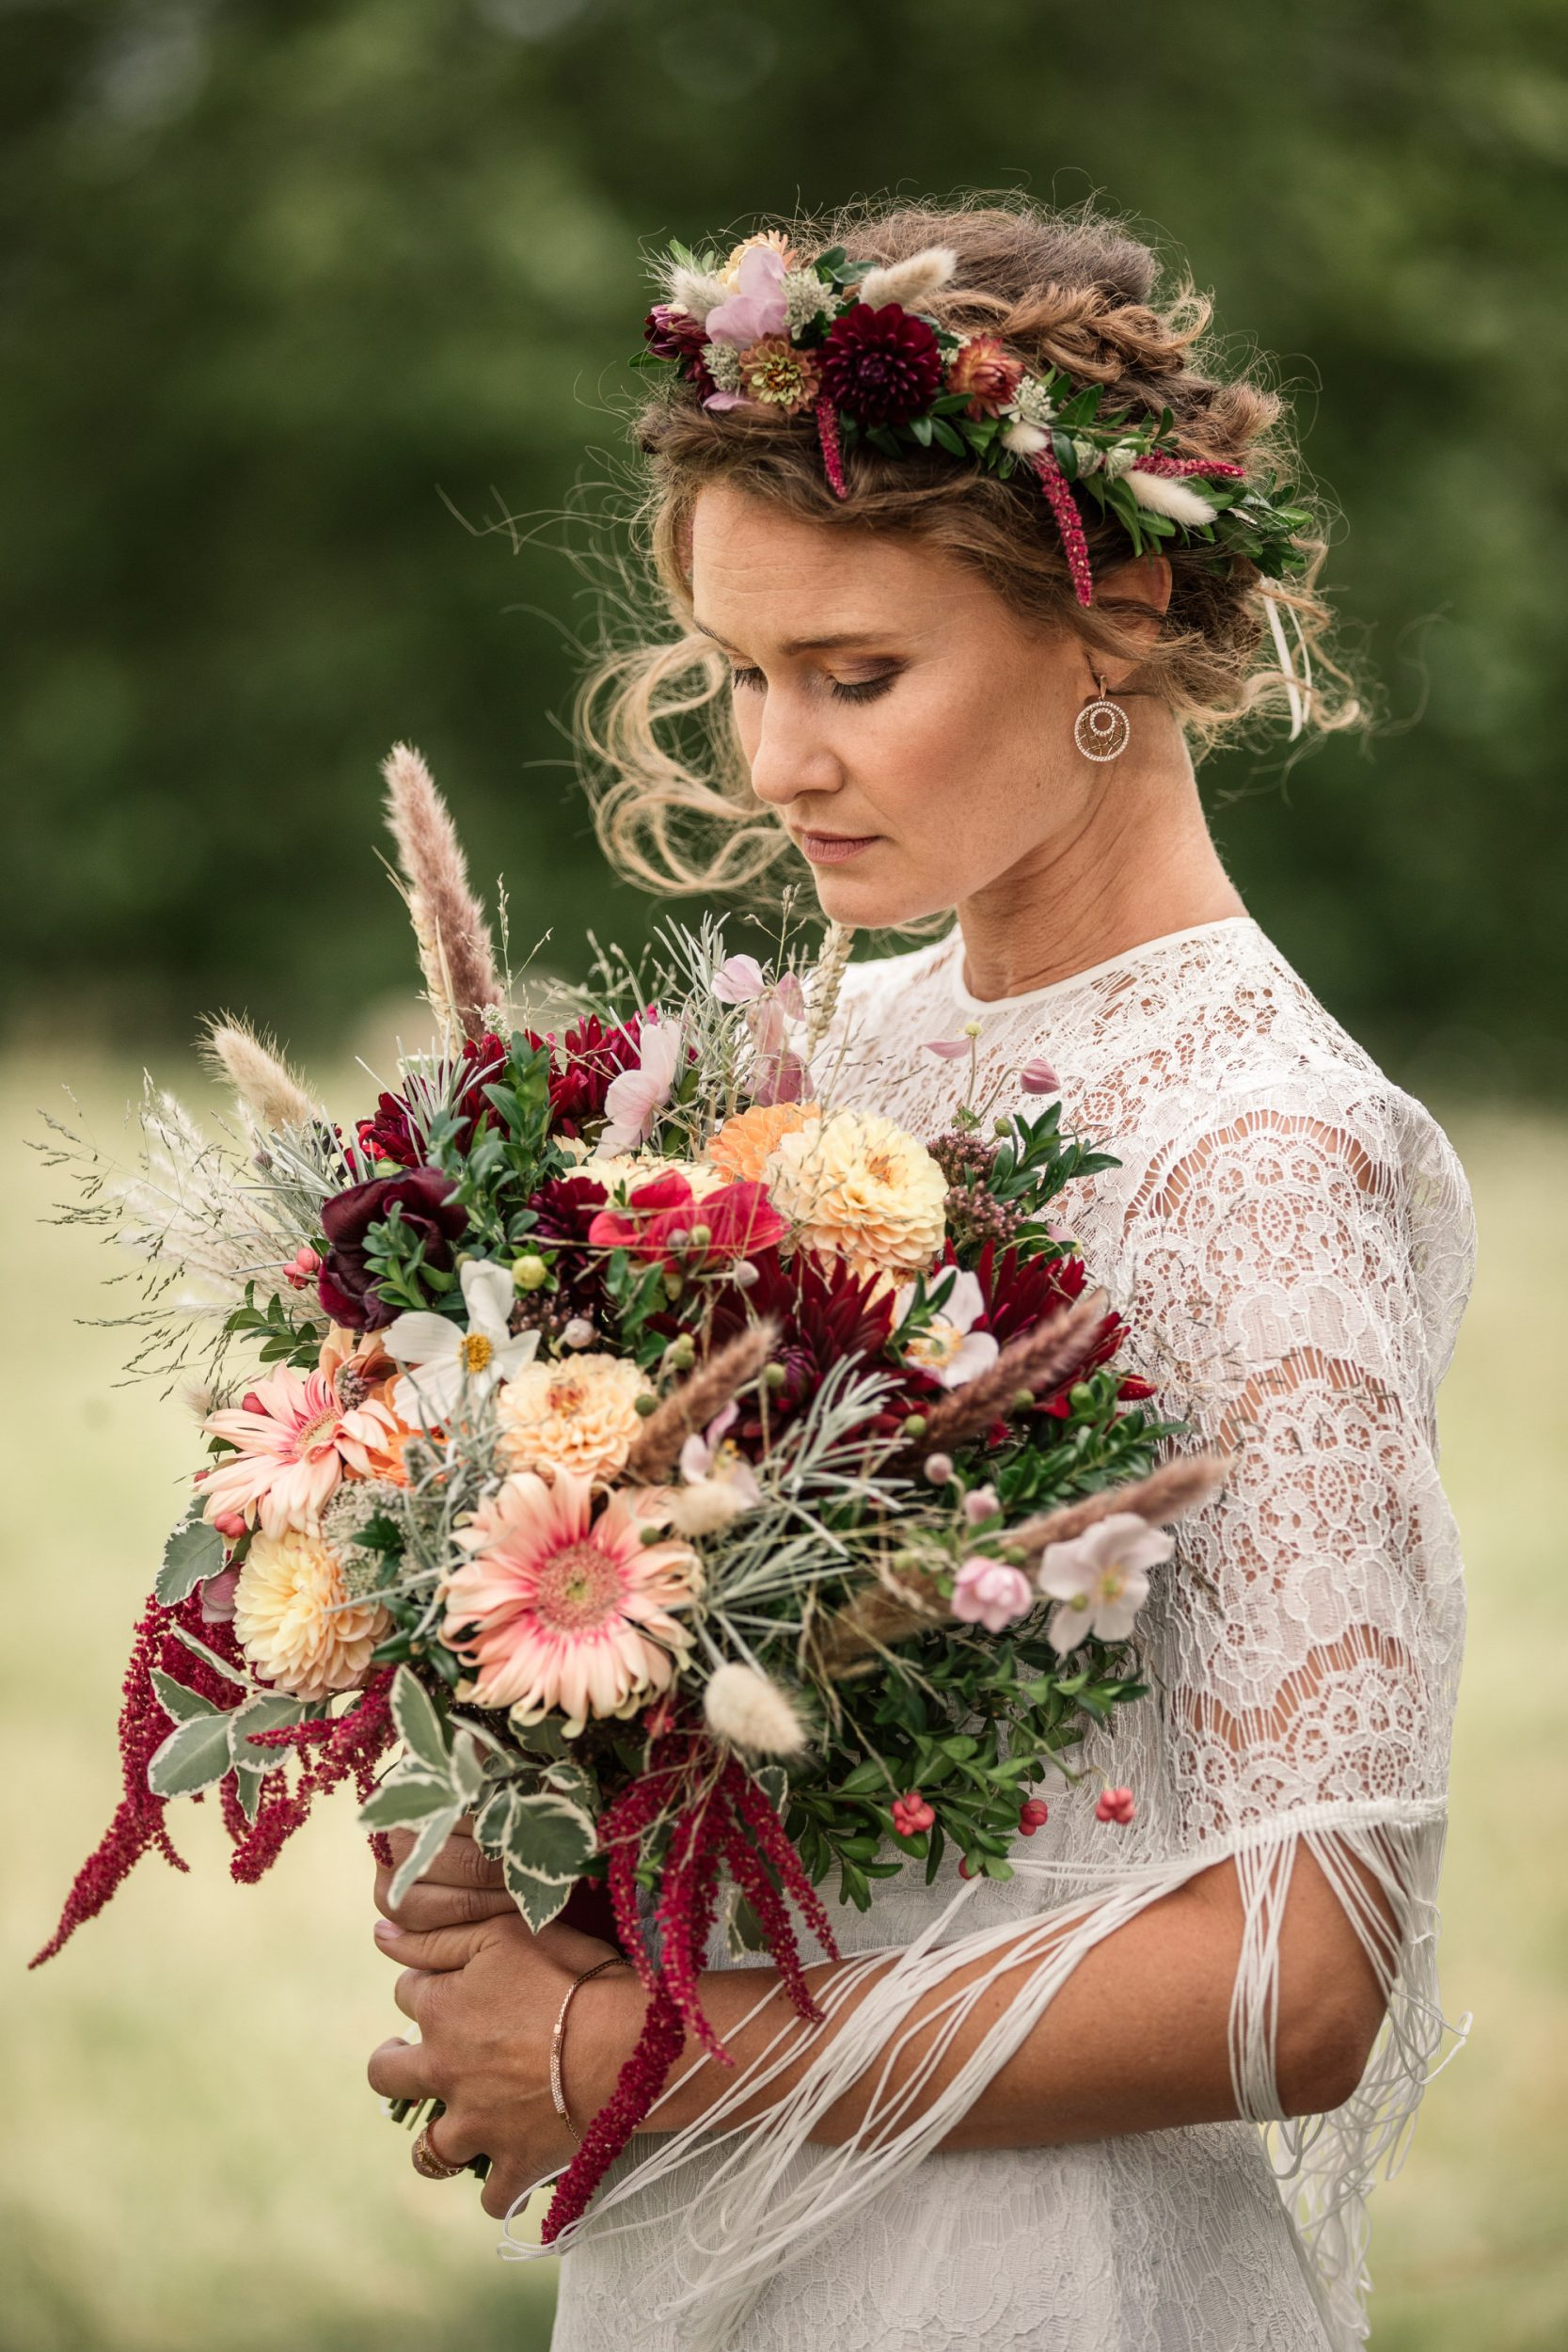 Bridal Bouquet and Bride for Suffolk Barn Wedding Photographer